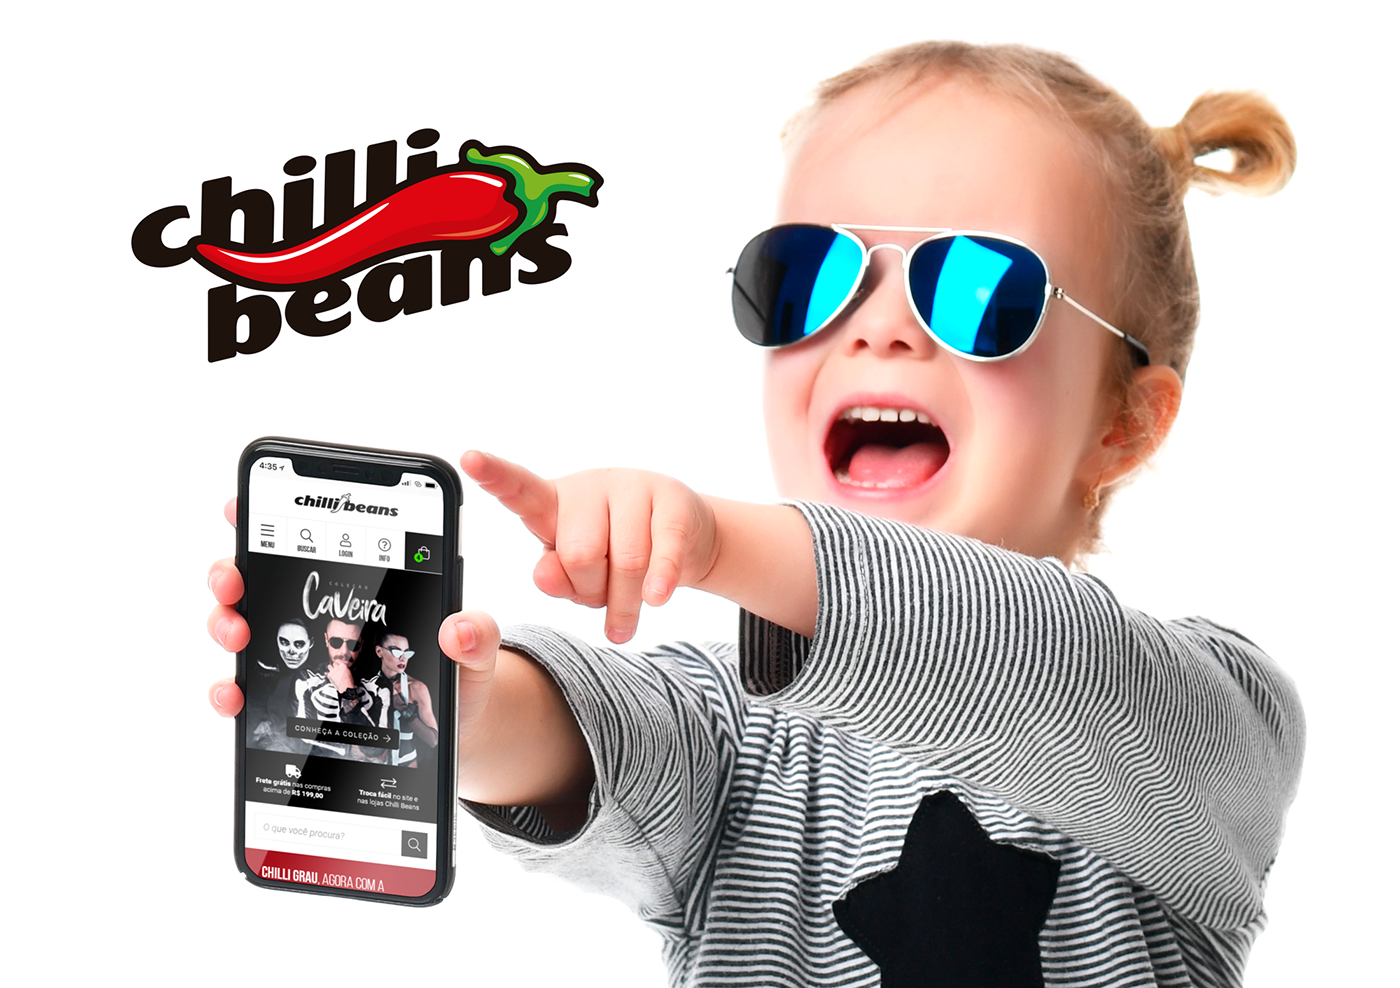 998bdeb3d64c1 Chilli Beans is the biggest eyewear and accessories company in Latin  America with more than 800 stores in Brazil and present 7 other countries.